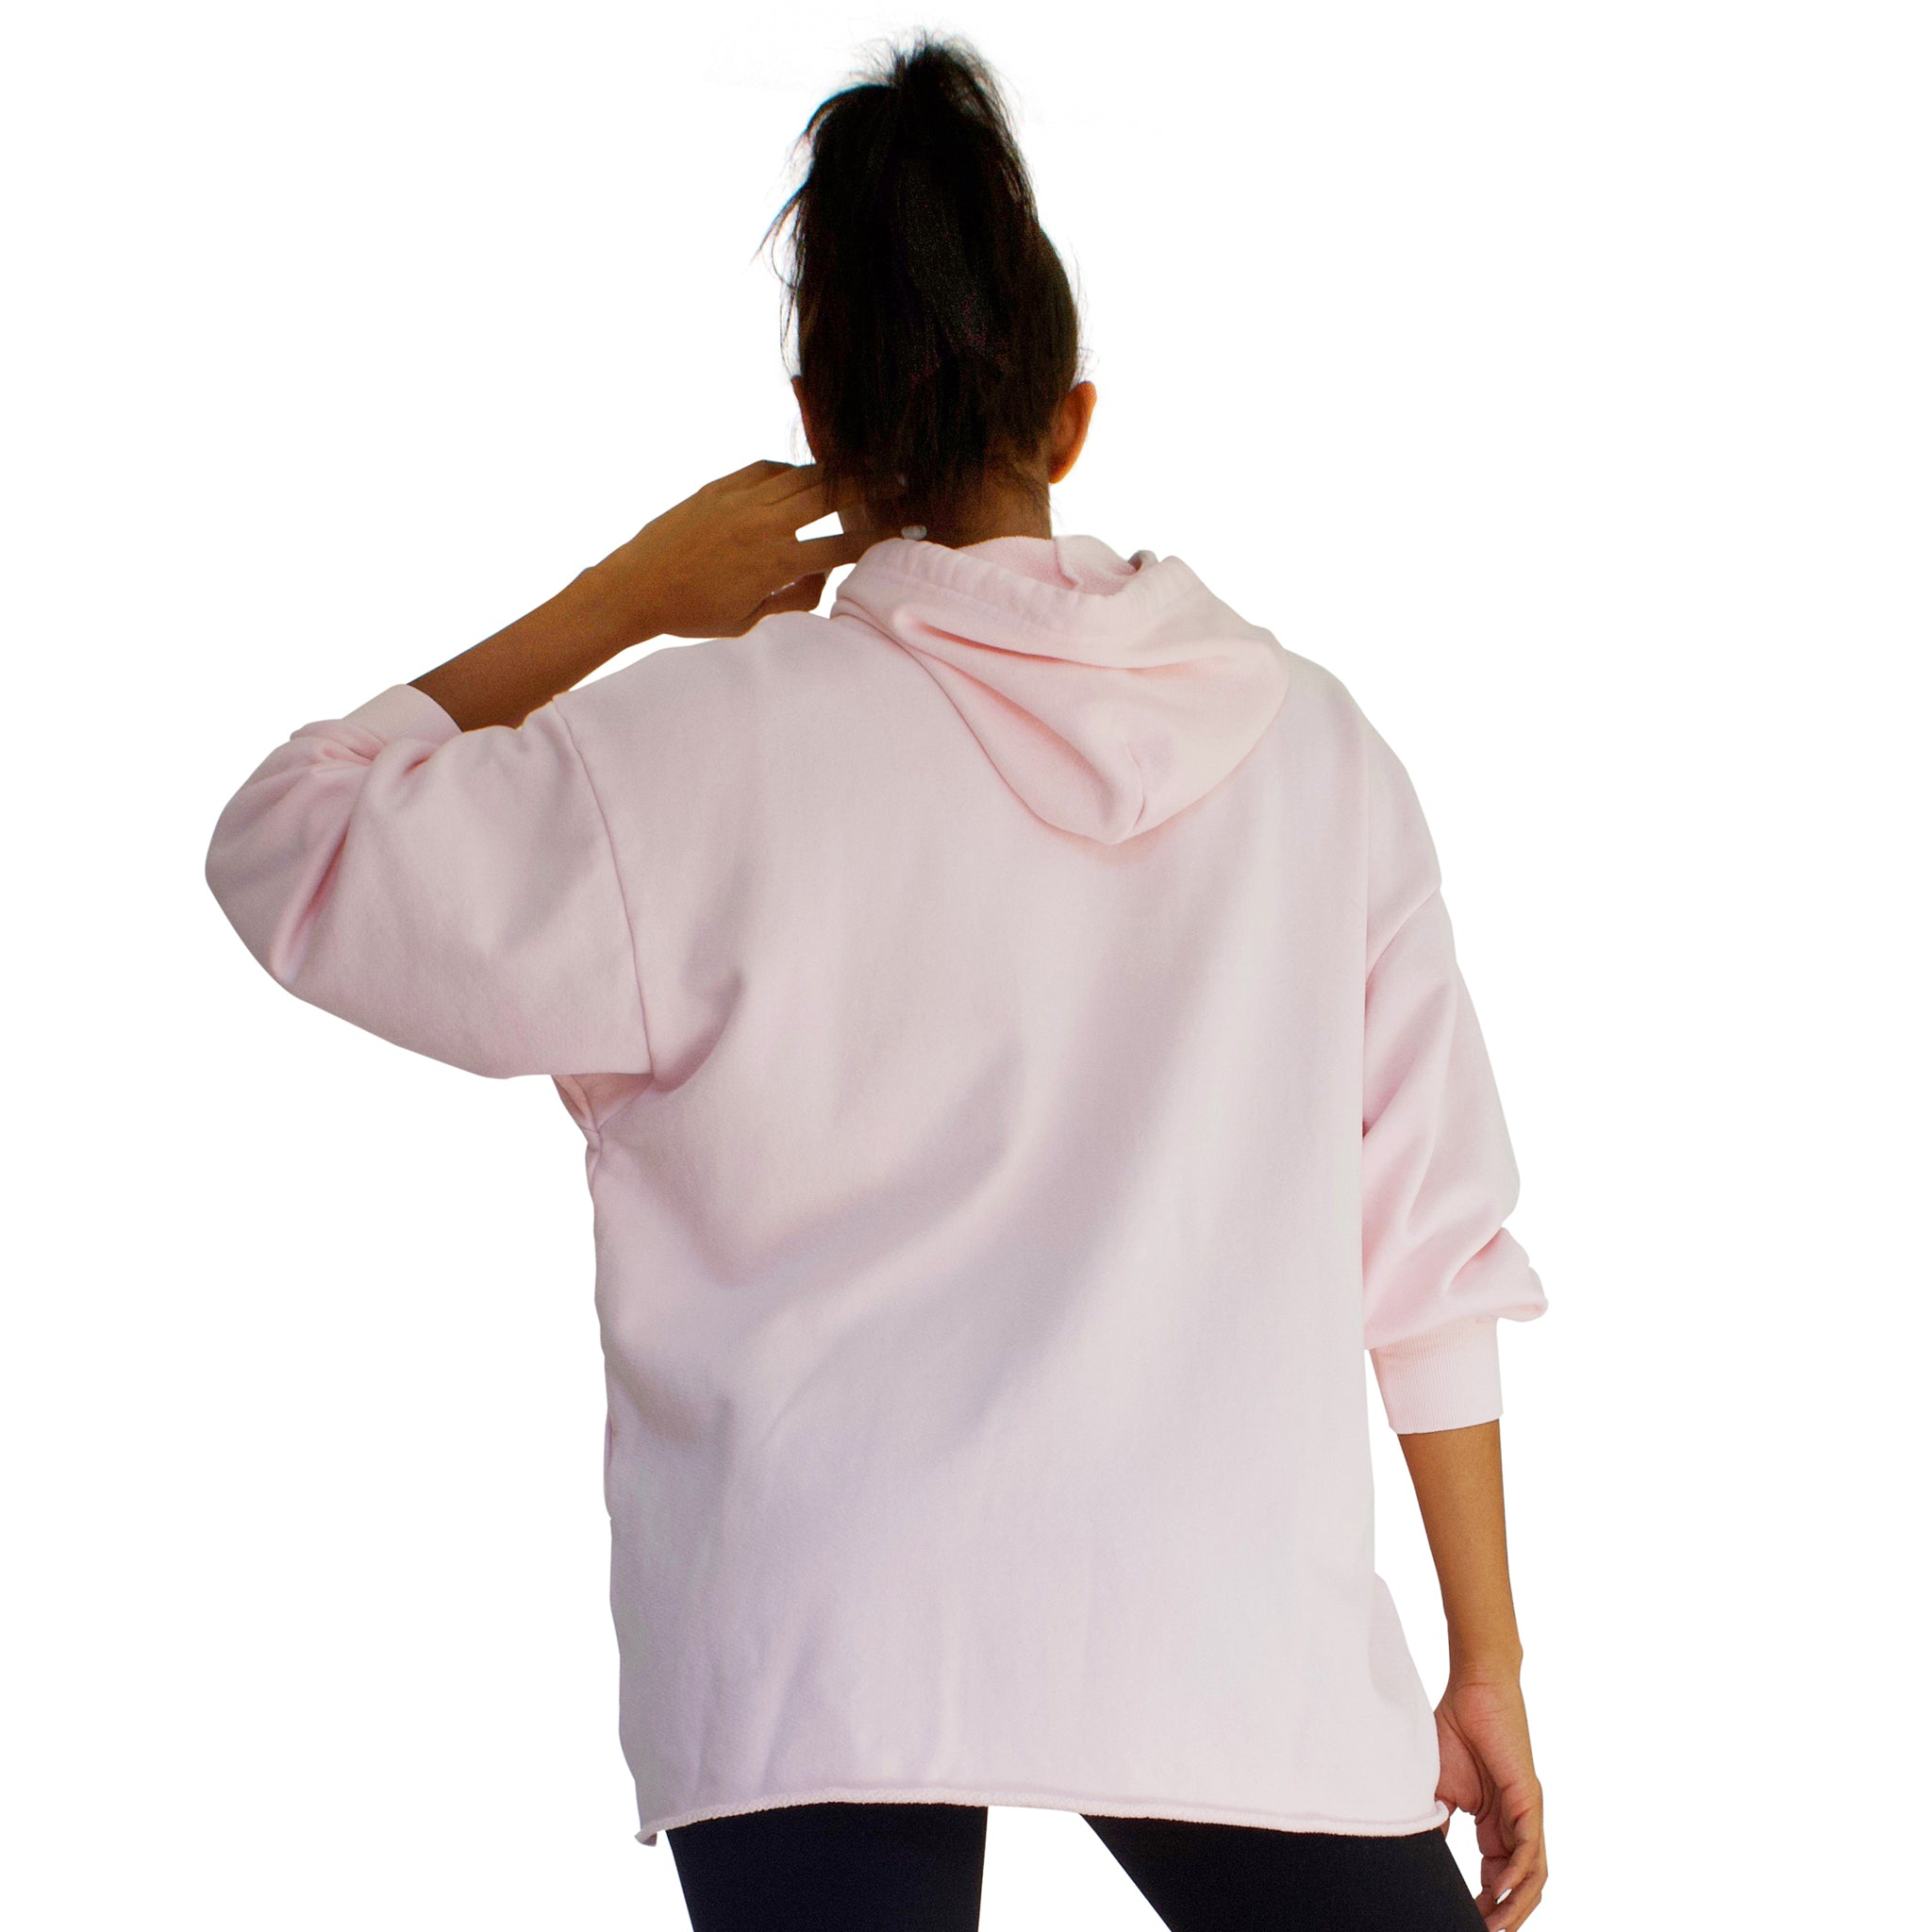 100% cotton French Terry CC Beach Hoodie in Candy Pink back view.